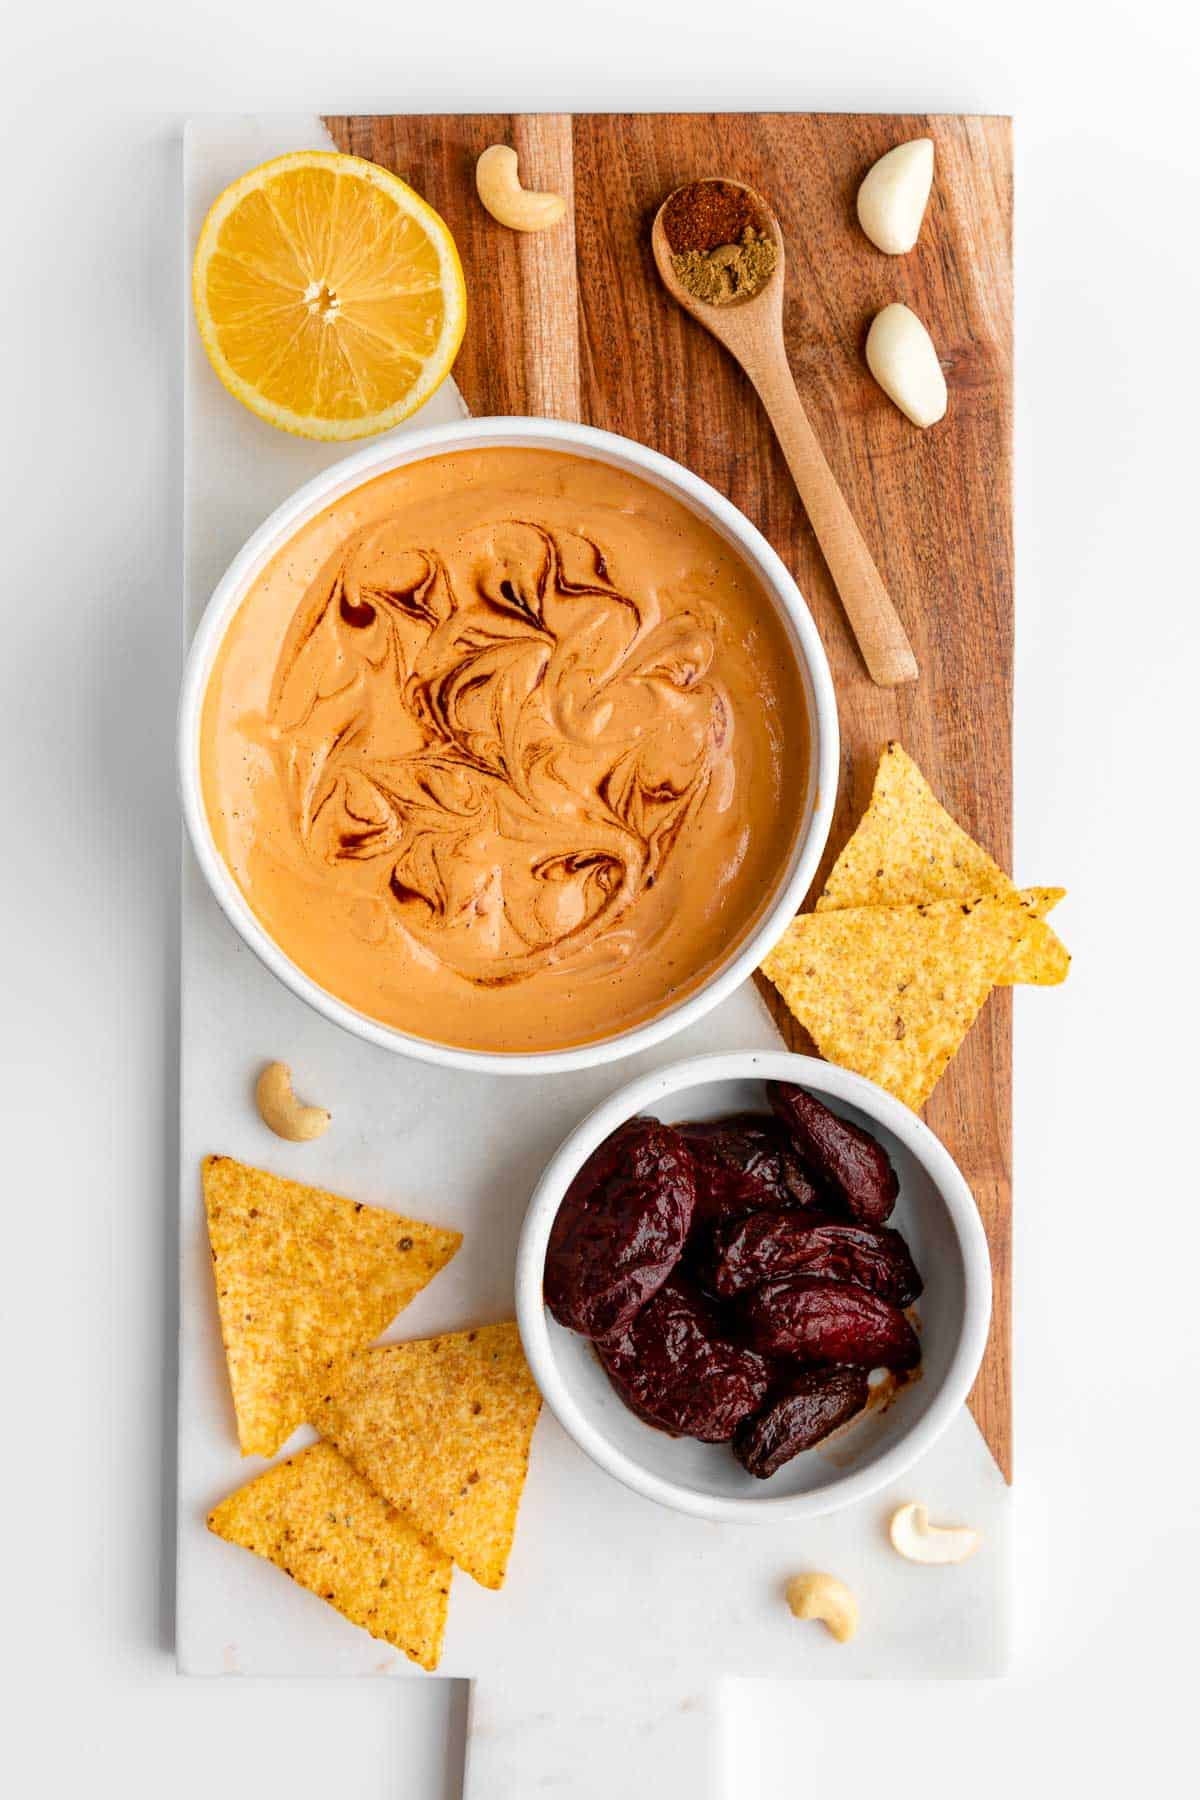 a marble serving board with a bowl of vegan chipotle aioli, tortilla chips, peppers in adobo sauce, lemon, and cashews on top